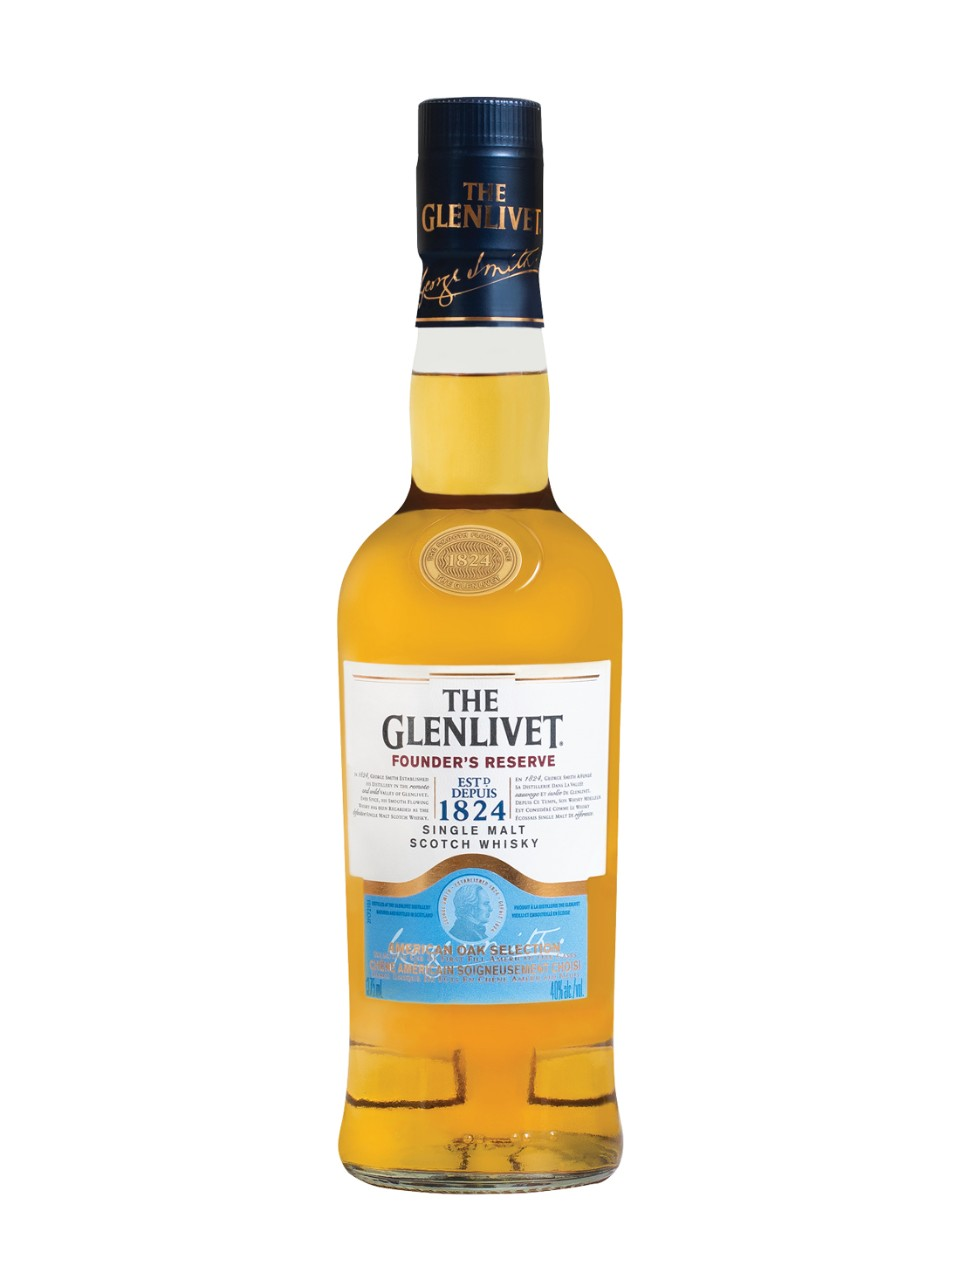 Image for The Glenlivet Founder's Reserve Scotch Whisky from LCBO